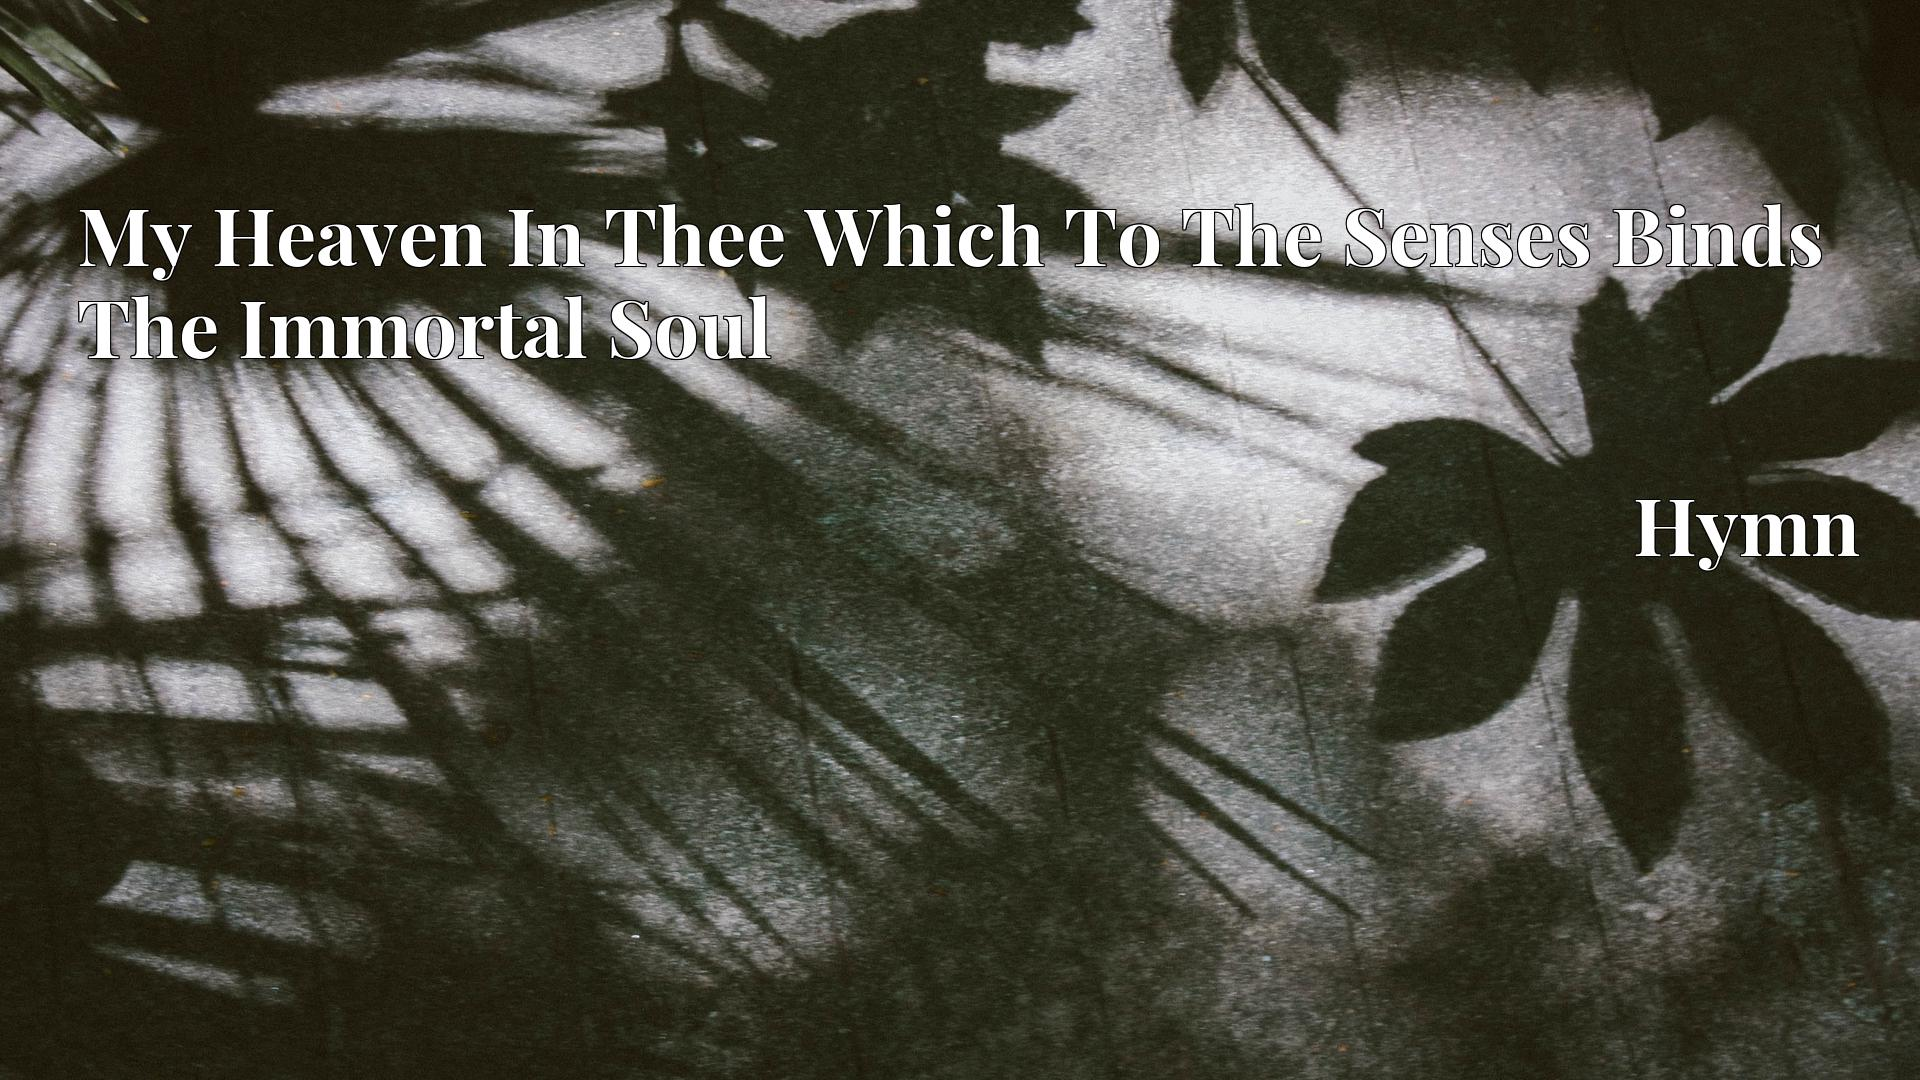 My Heaven In Thee Which To The Senses Binds The Immortal Soul - Hymn